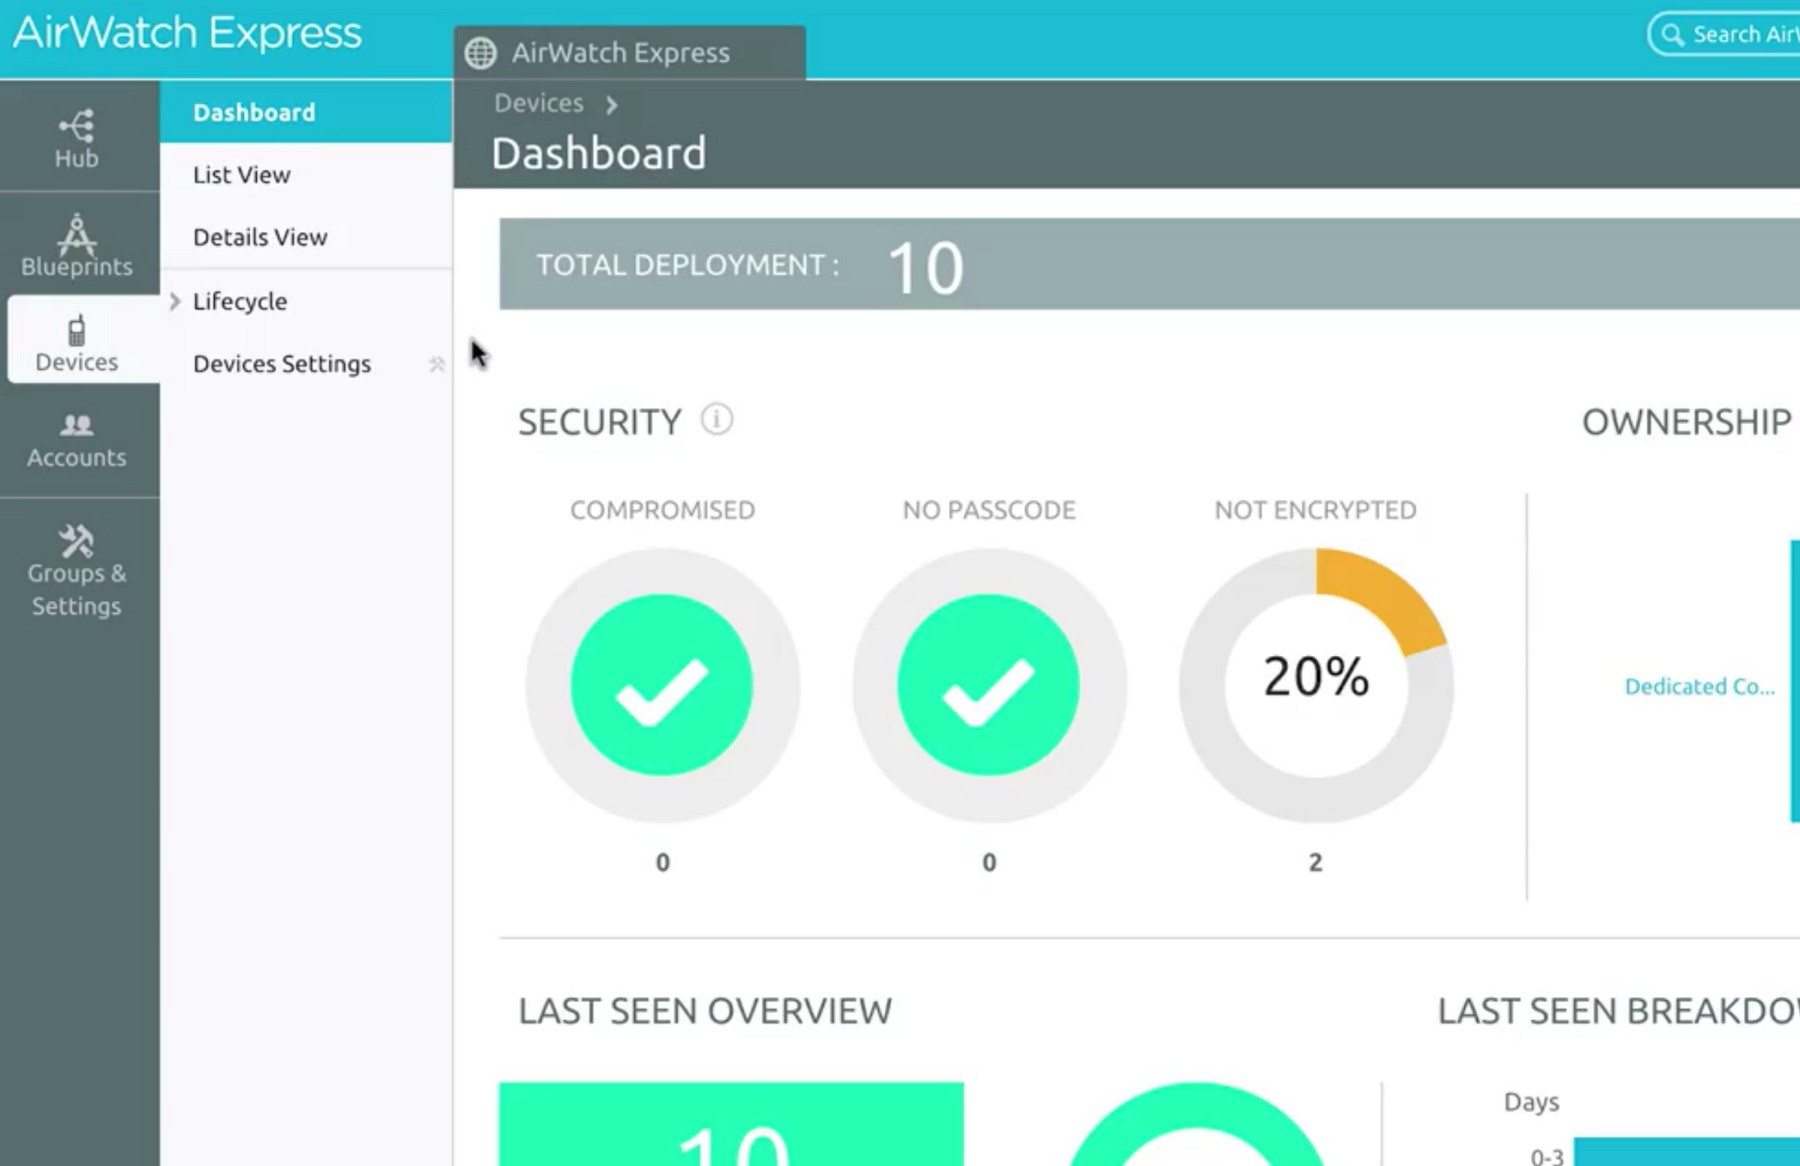 VMware simplifies mobile device management with AirWatch